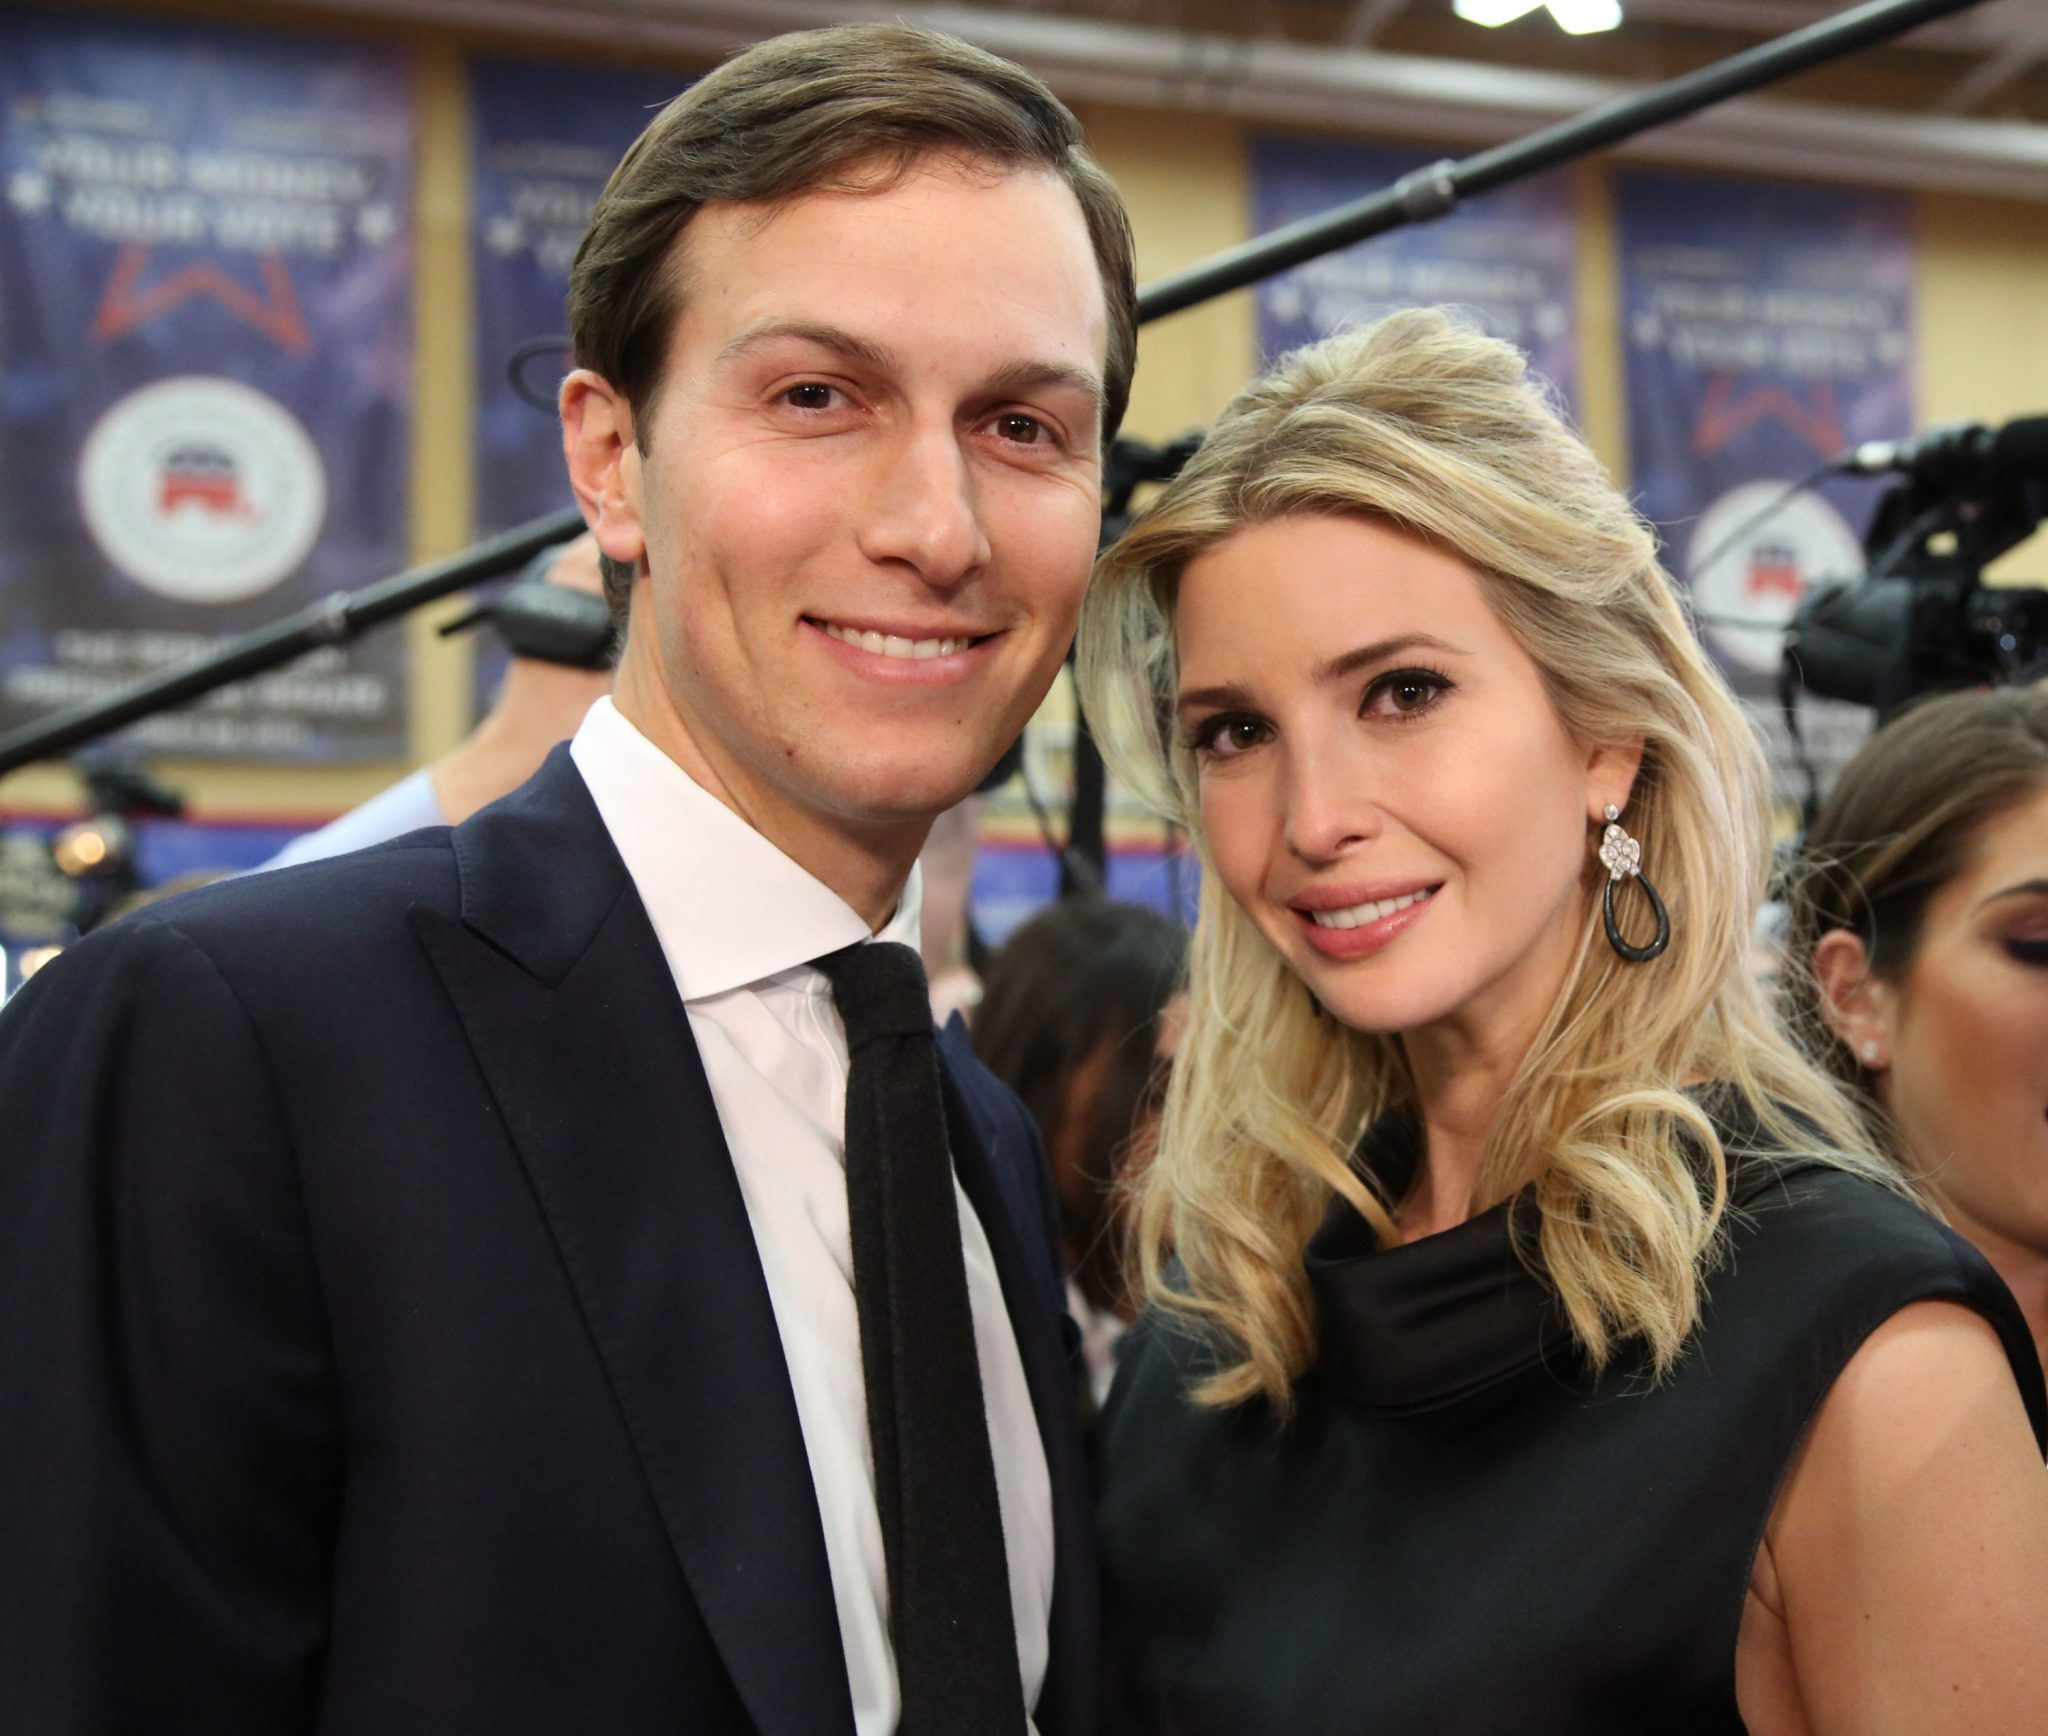 Here's Where Ivanka Trump and Jared Kushner Should Live When They Move to DC